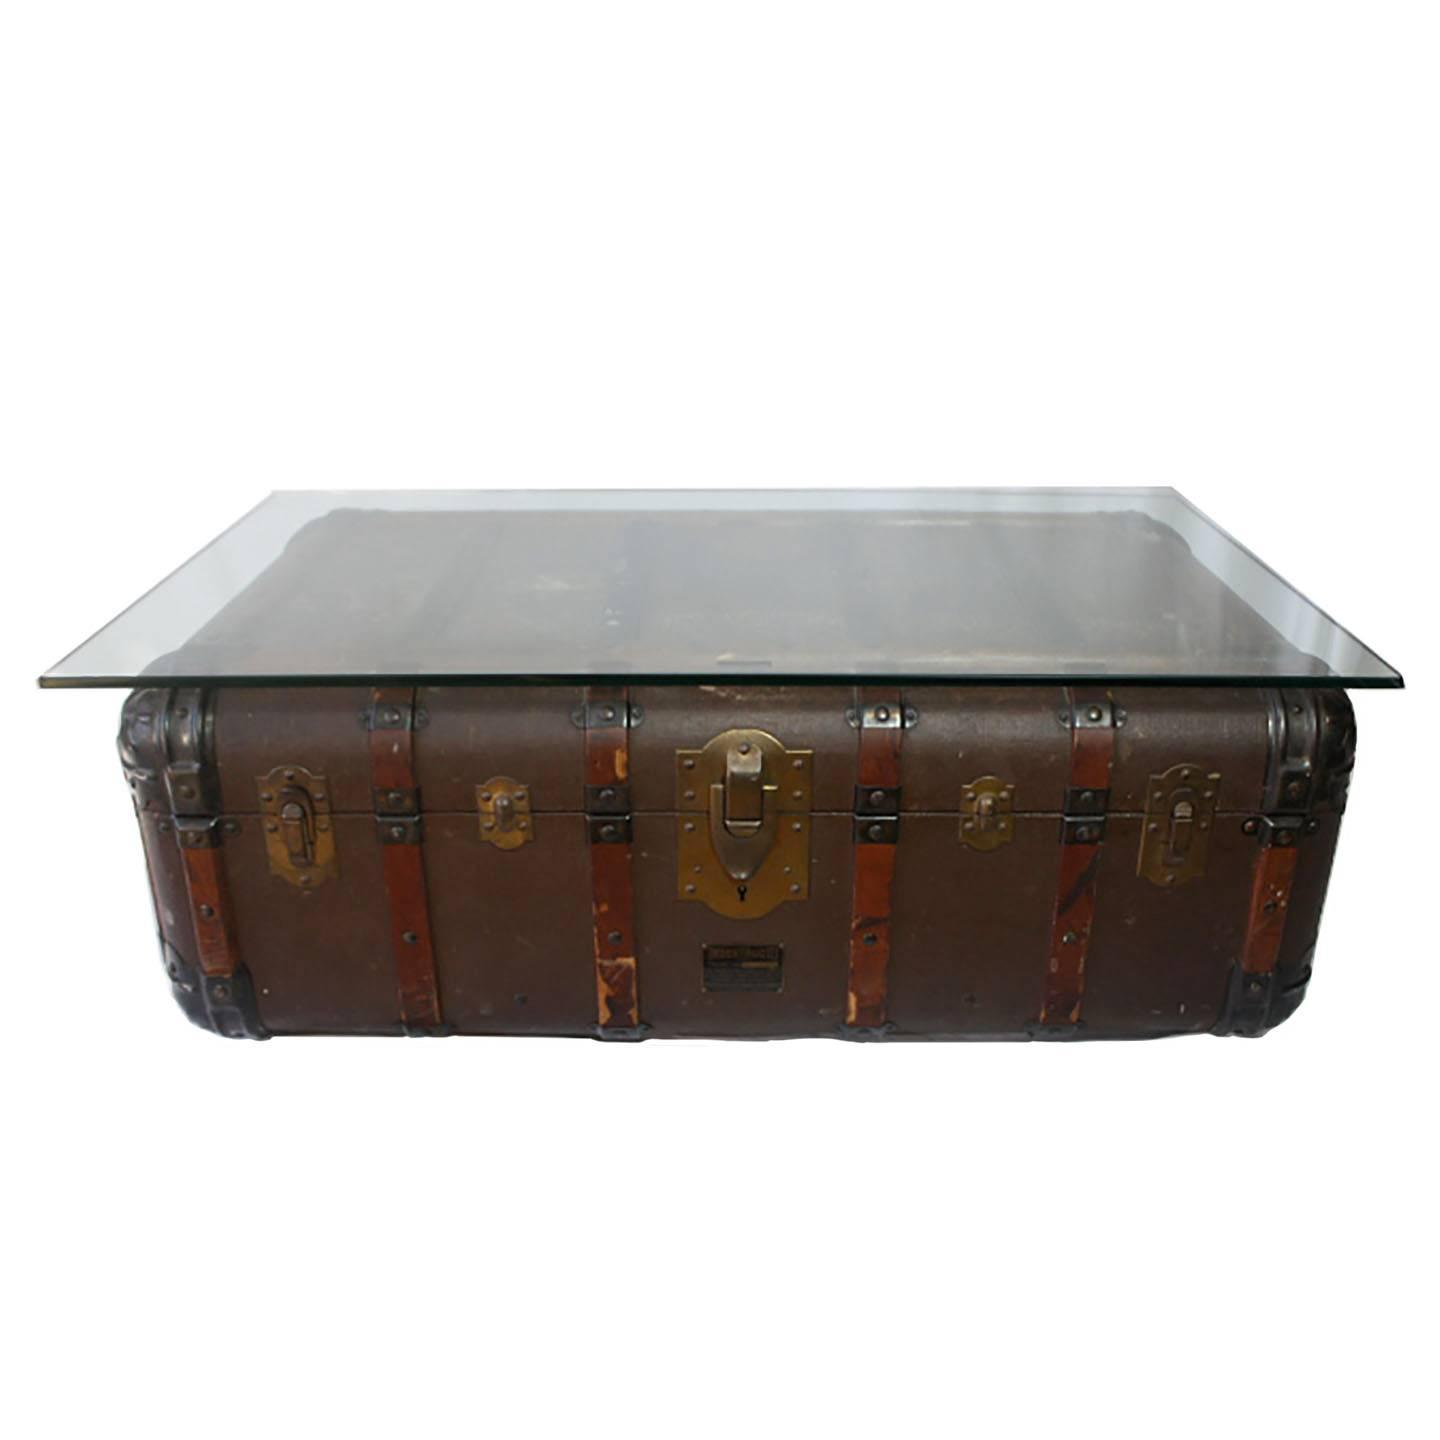 Antique steamer trunk coffee table side table circa 1900 at 1stdibs Old trunks as coffee tables